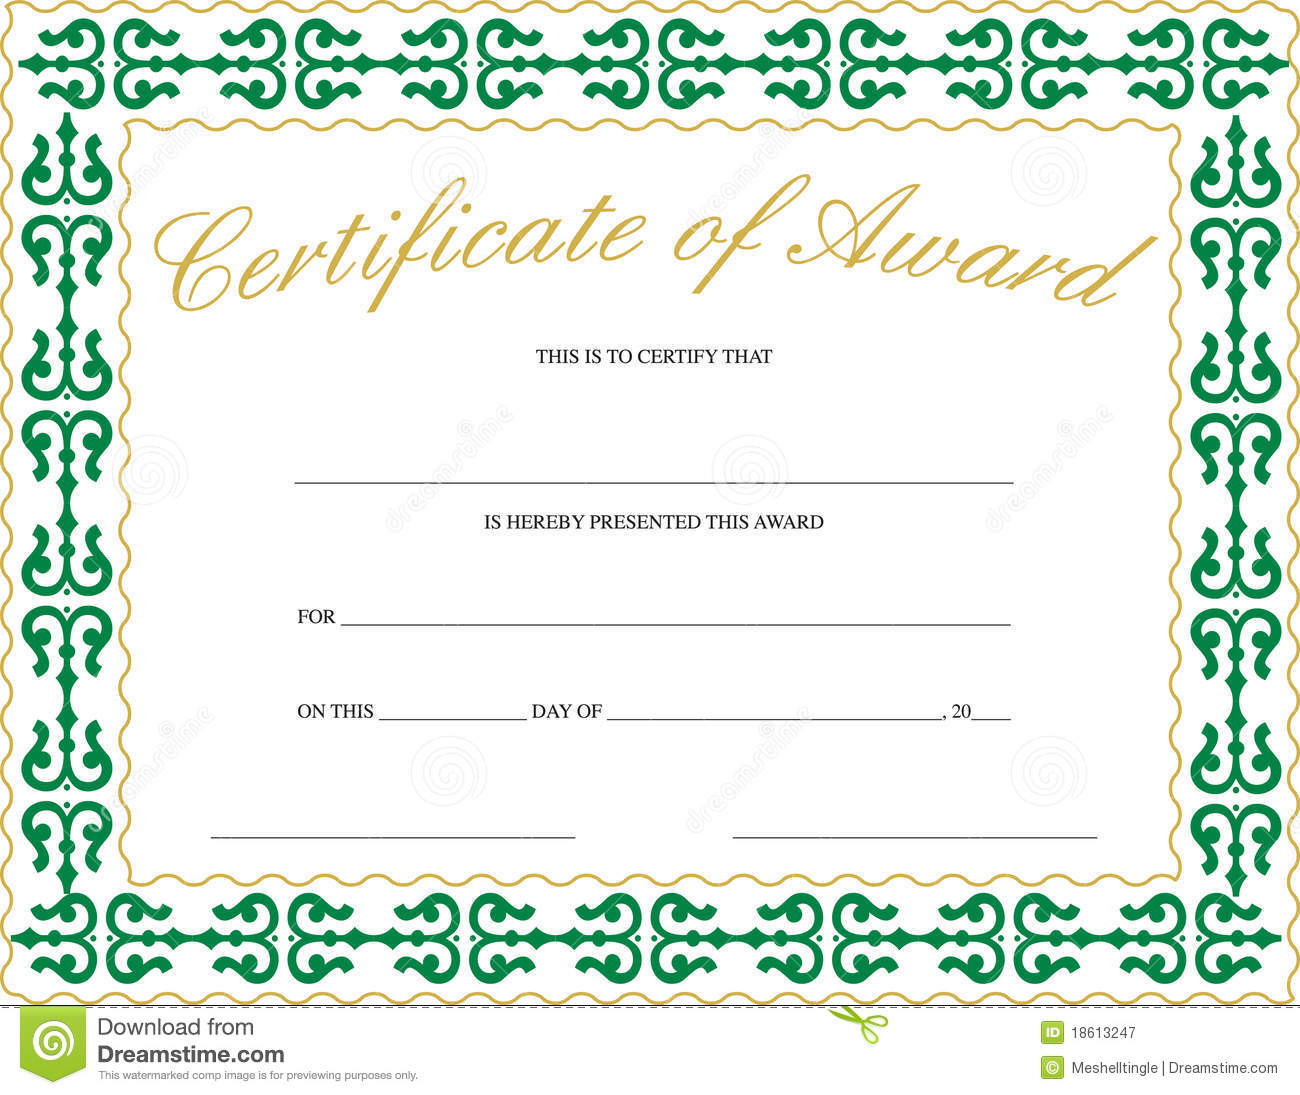 Free Award Certificate Templates Word Free Award Certificate Templates Word  Certificate Of Achievement Template Word